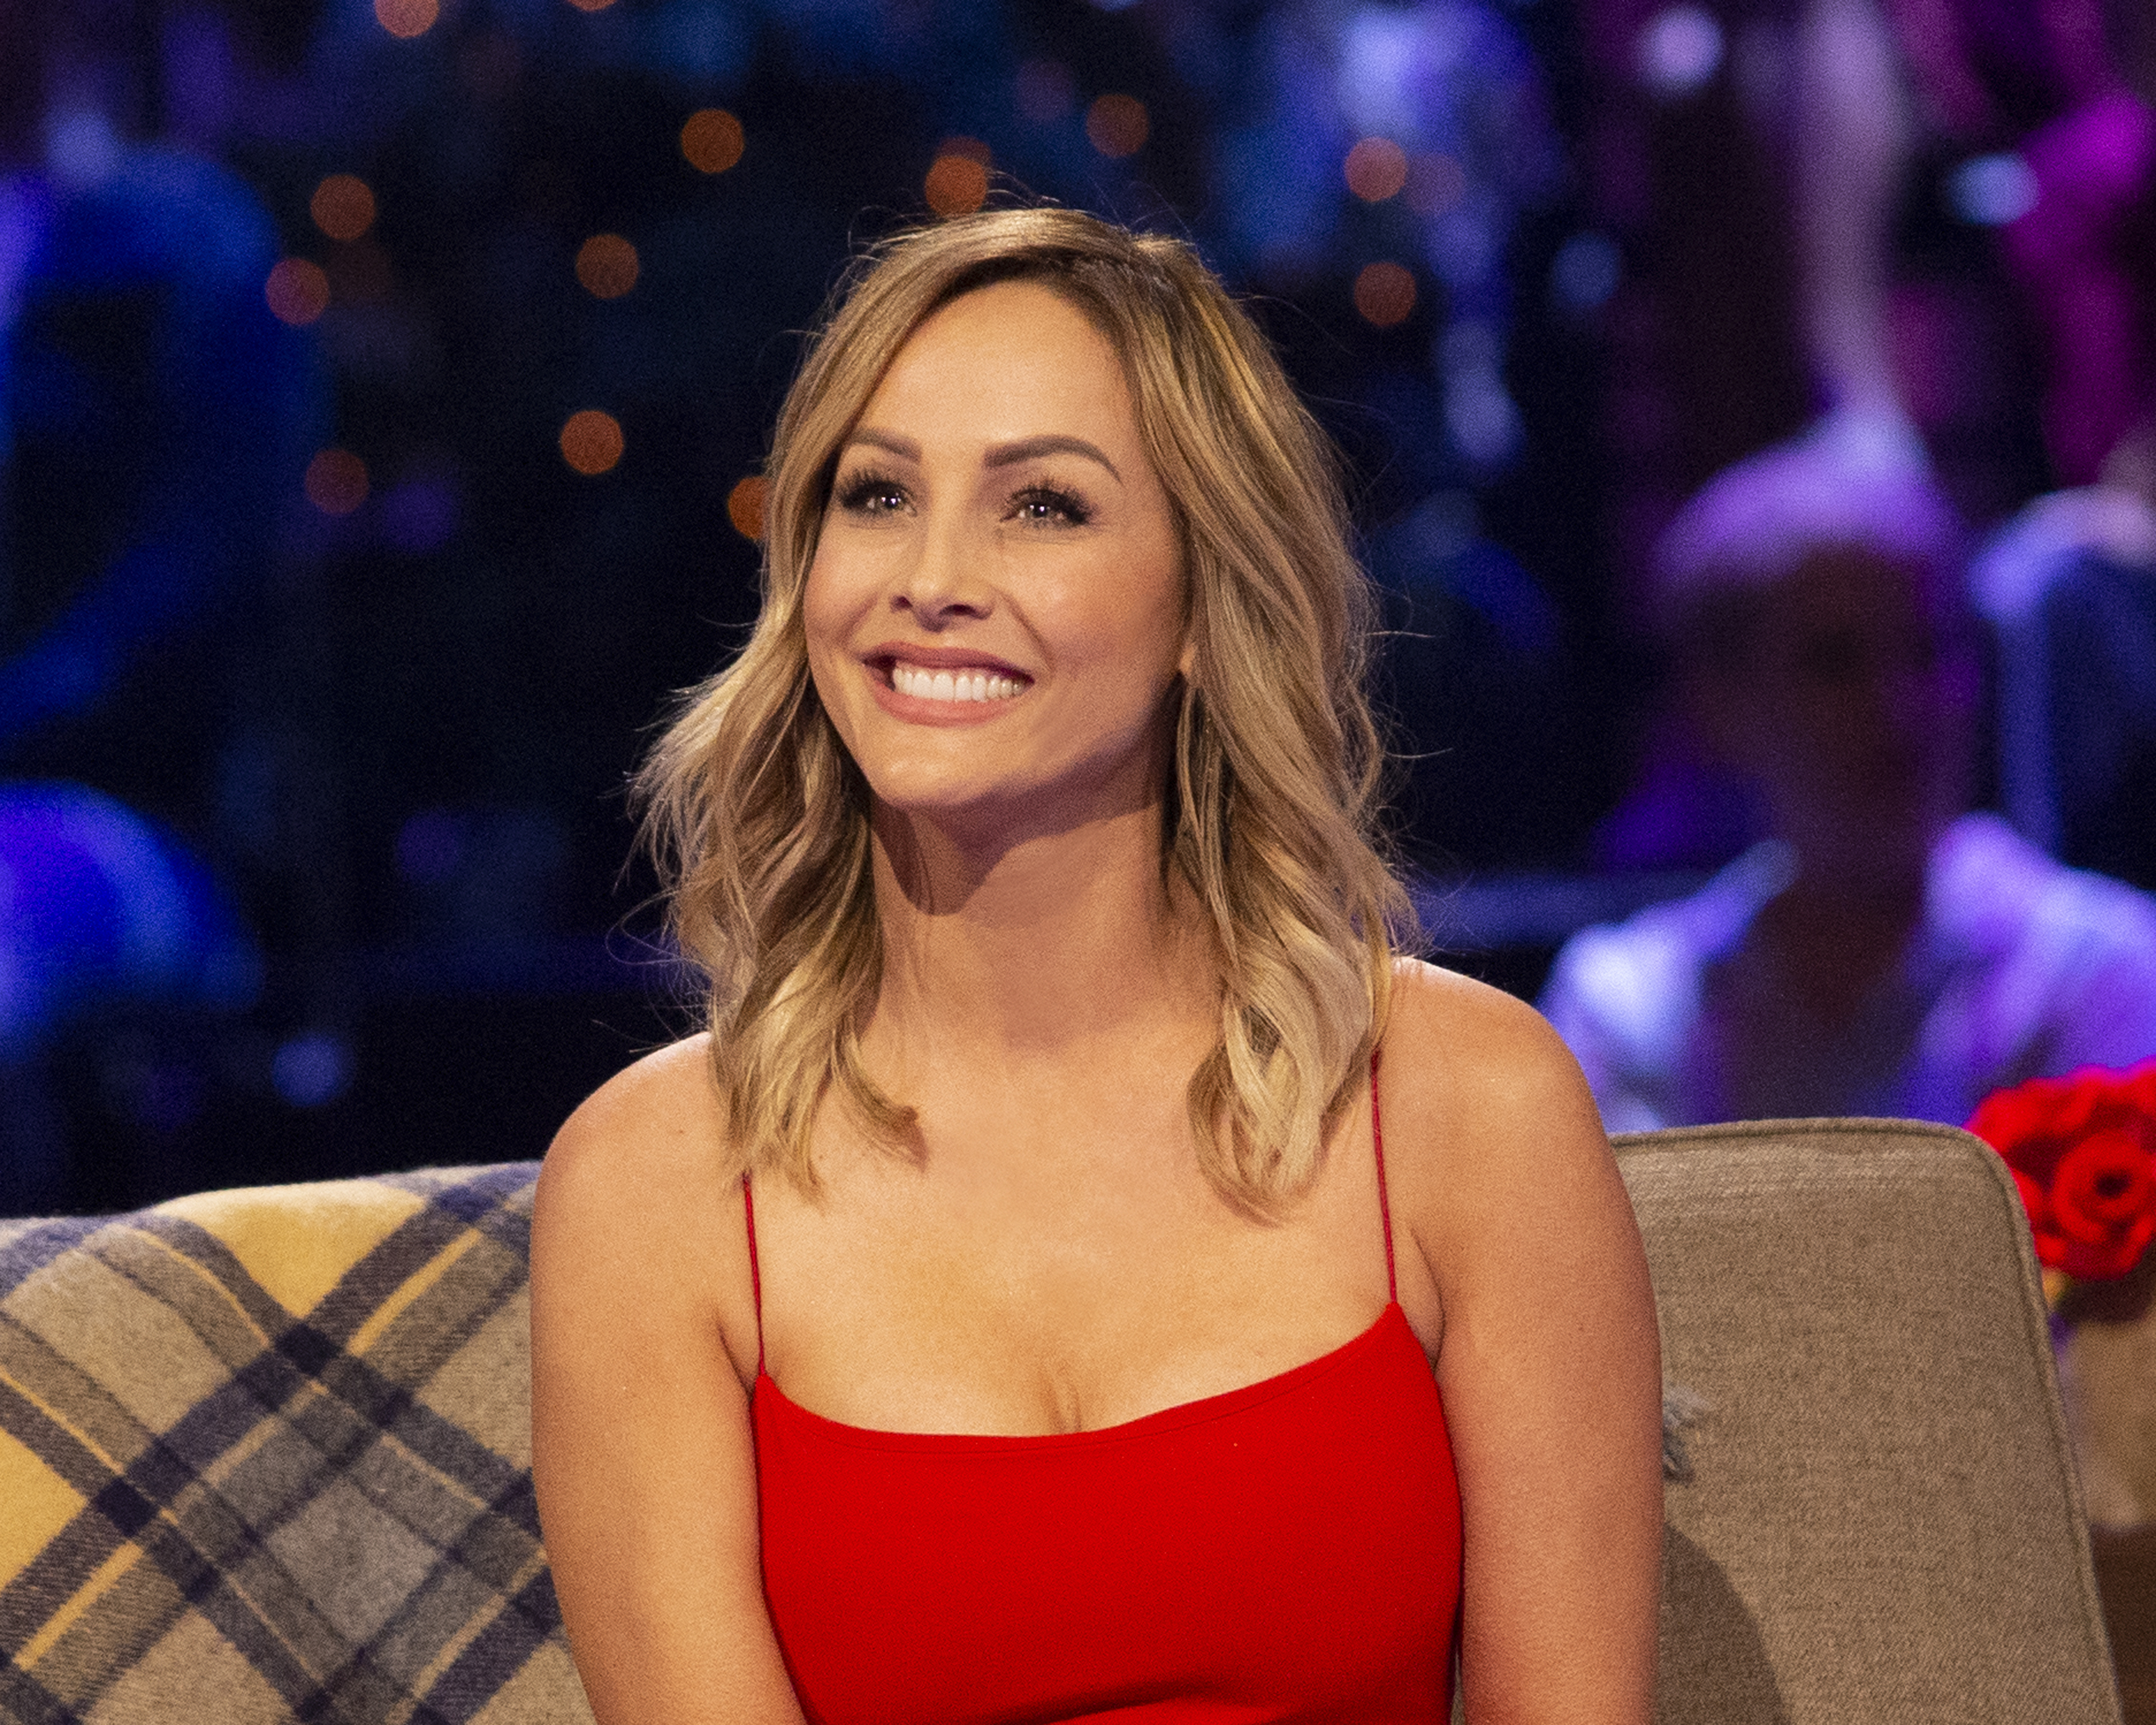 The Bachelorette revealed! Clare Crawley will look for love for